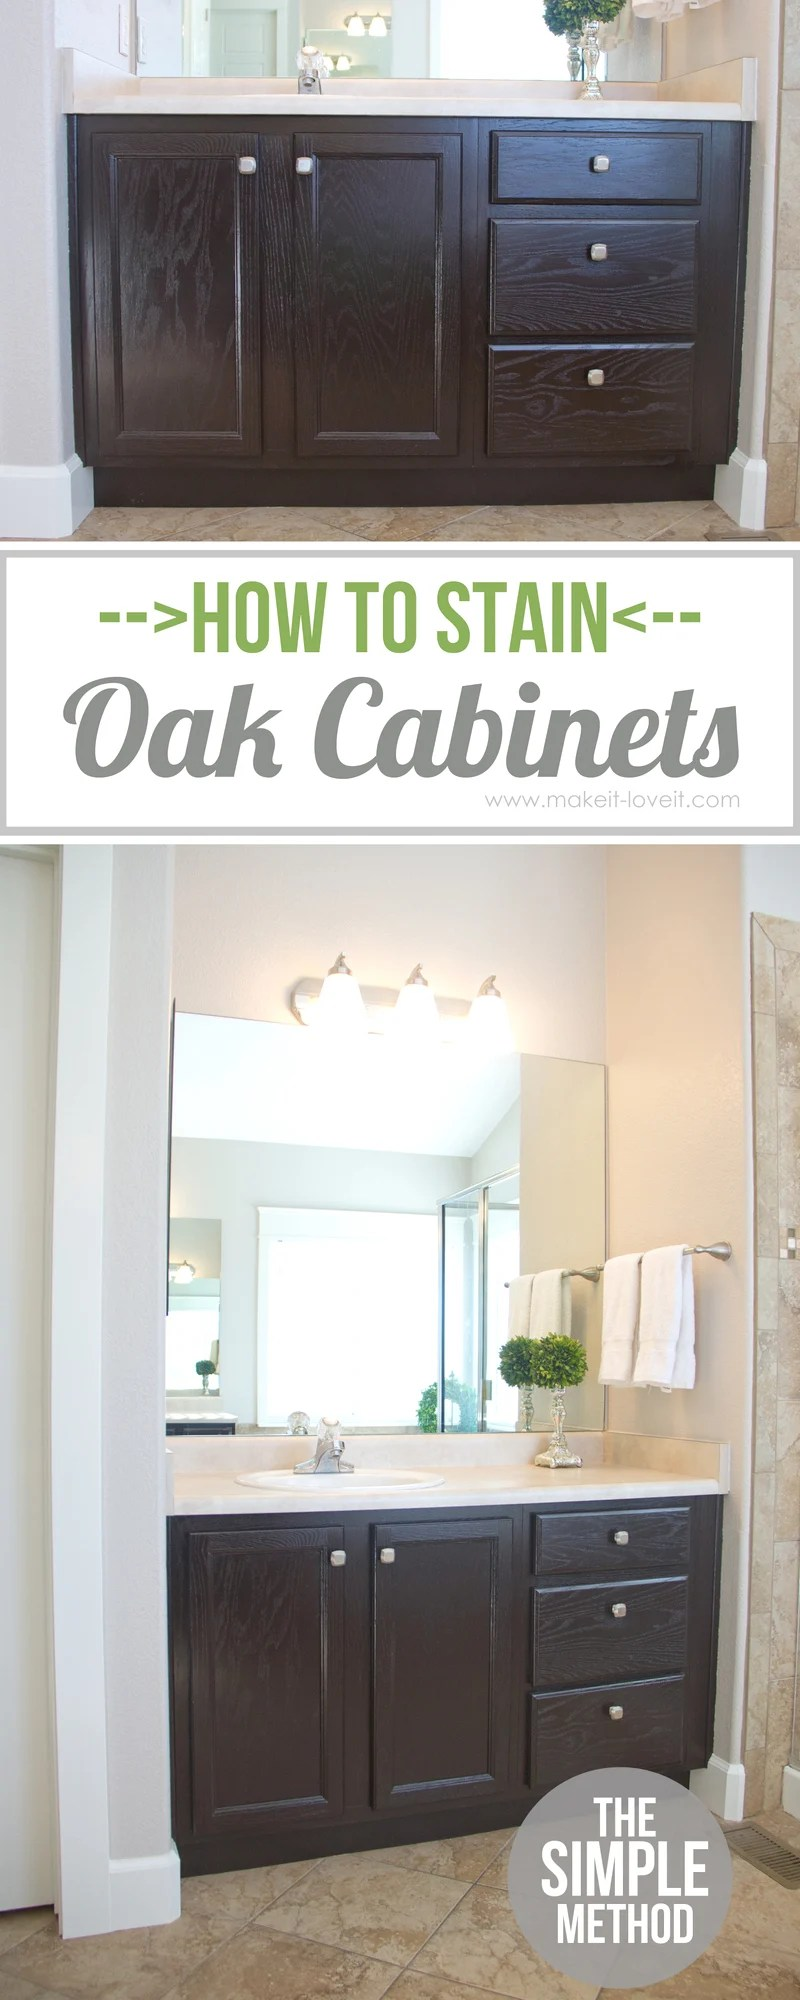 how to stain oak cabinets the simple method without sanding kitchen cabinet stain How to Stain OAK Cabinets the simple method no sanding necessary